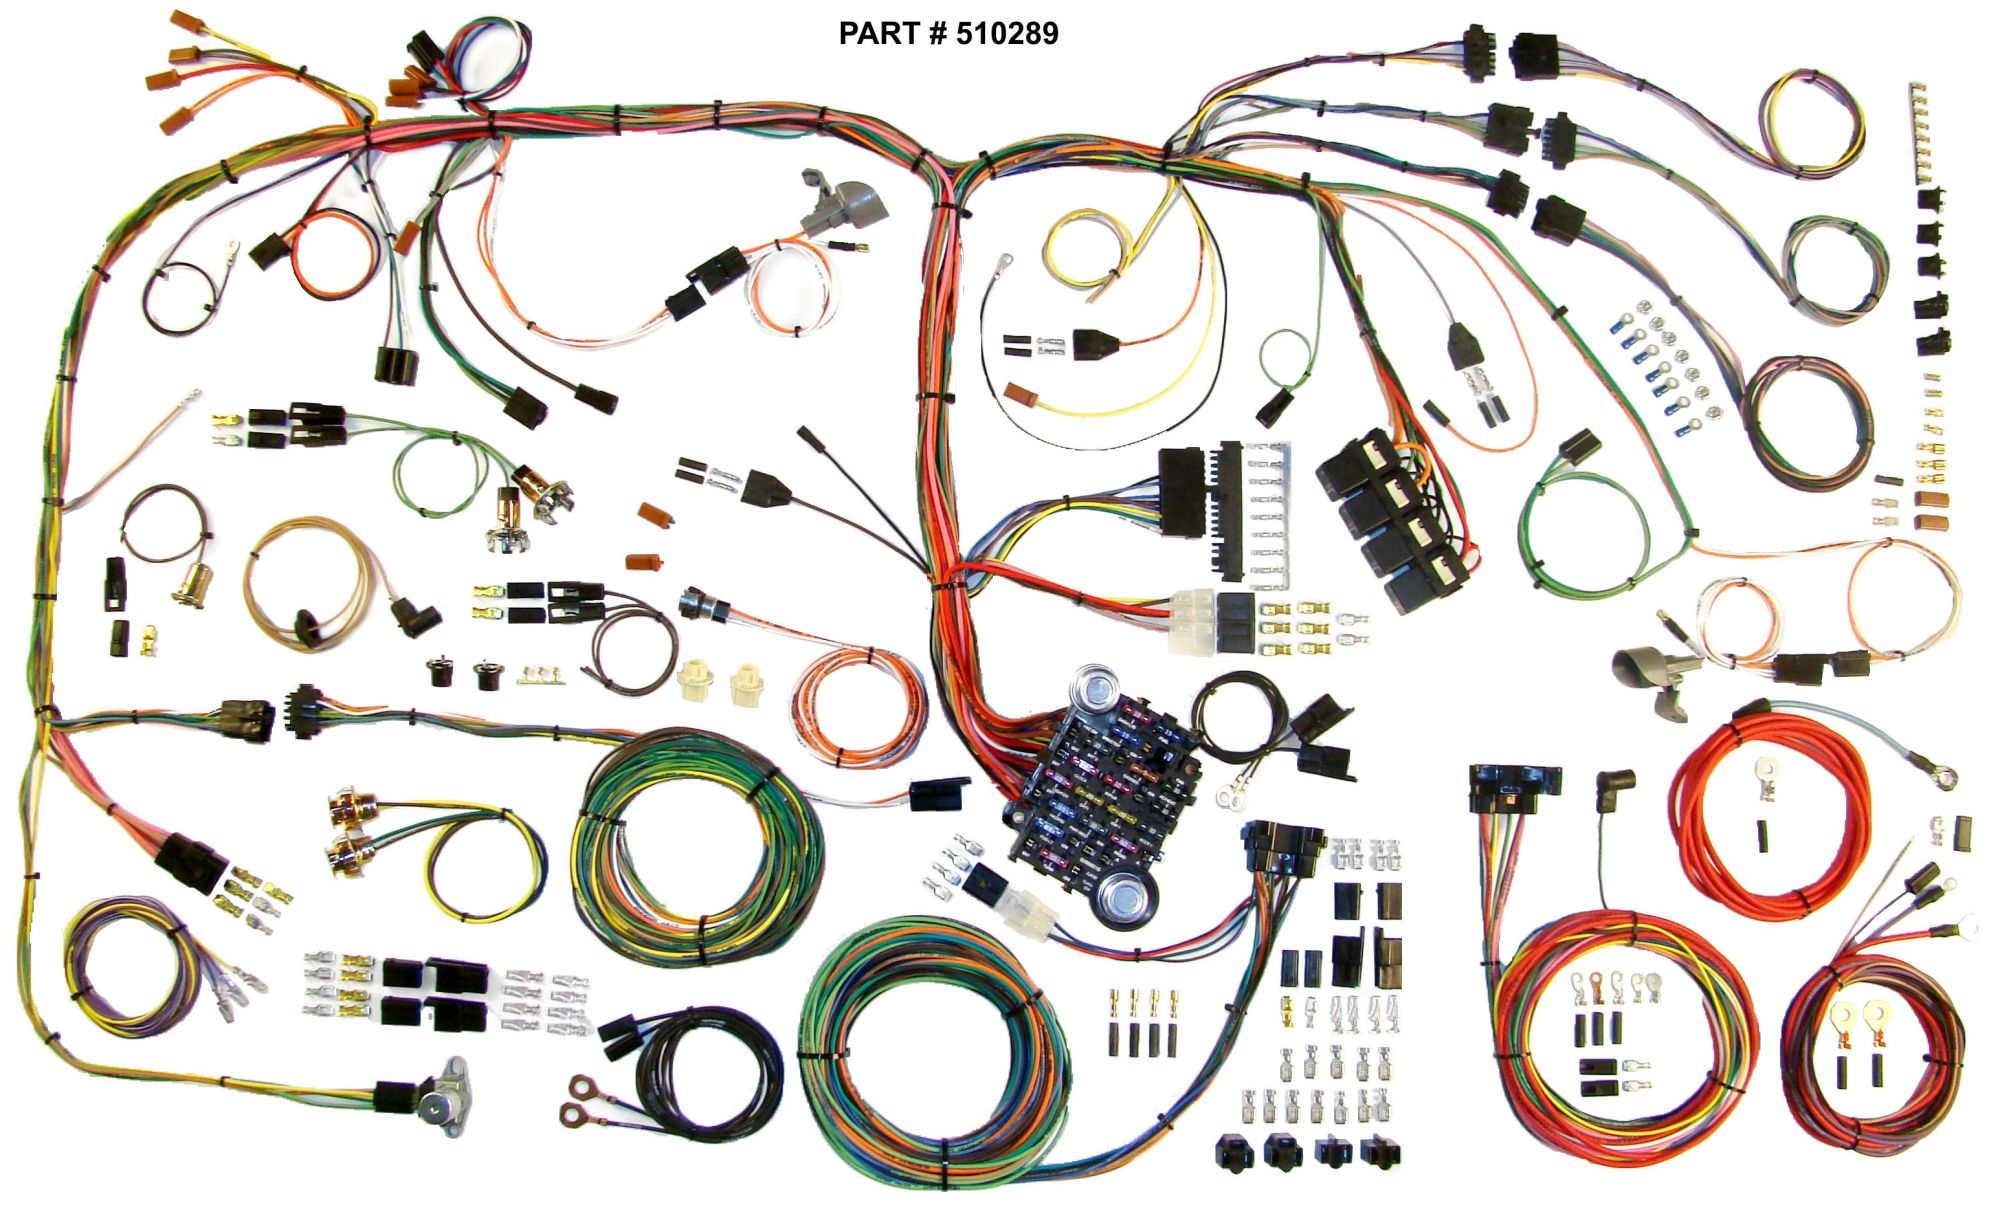 hight resolution of 1970 1974 plymouth barracuda dodge challenger restomod wiring system 1970 barracuda wiring harness 1970 74